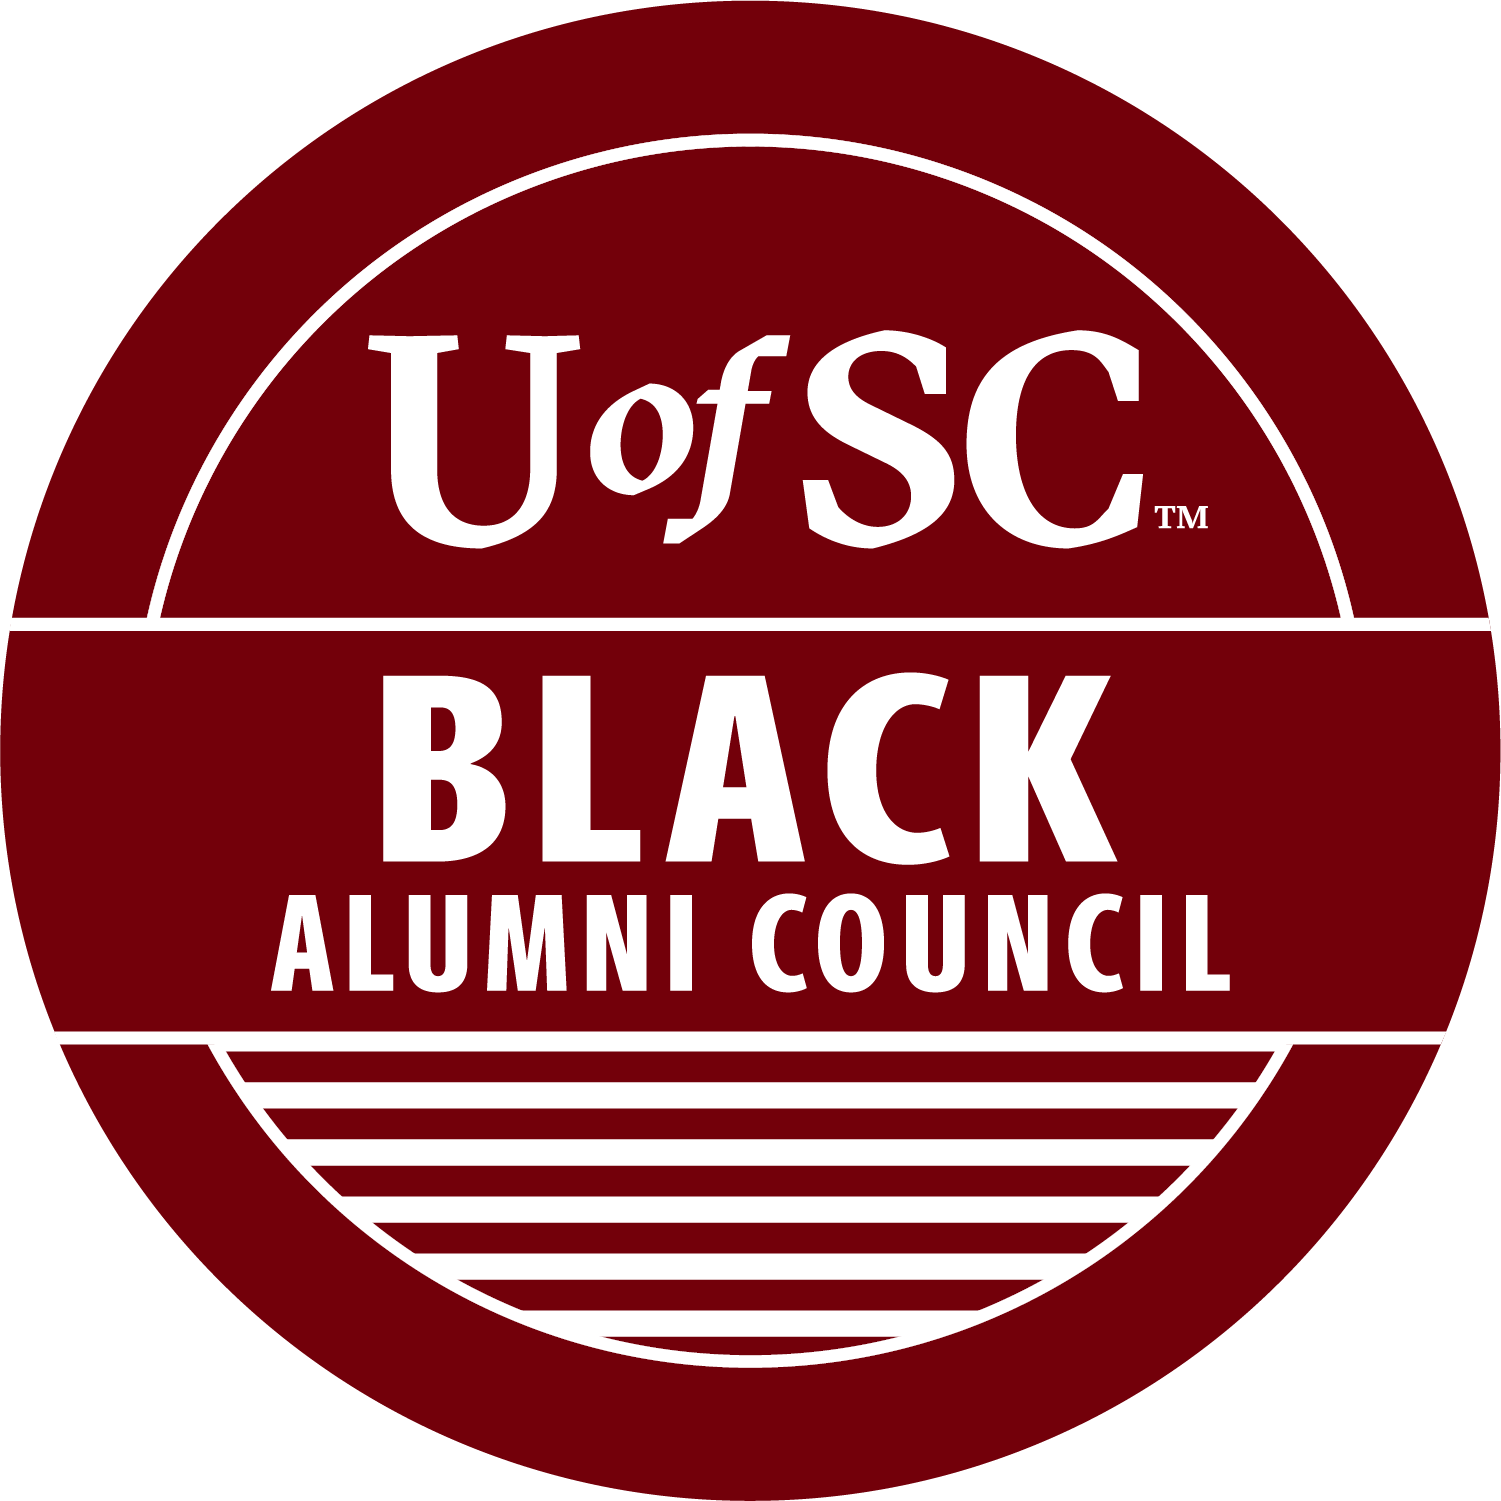 Black Alumni Council